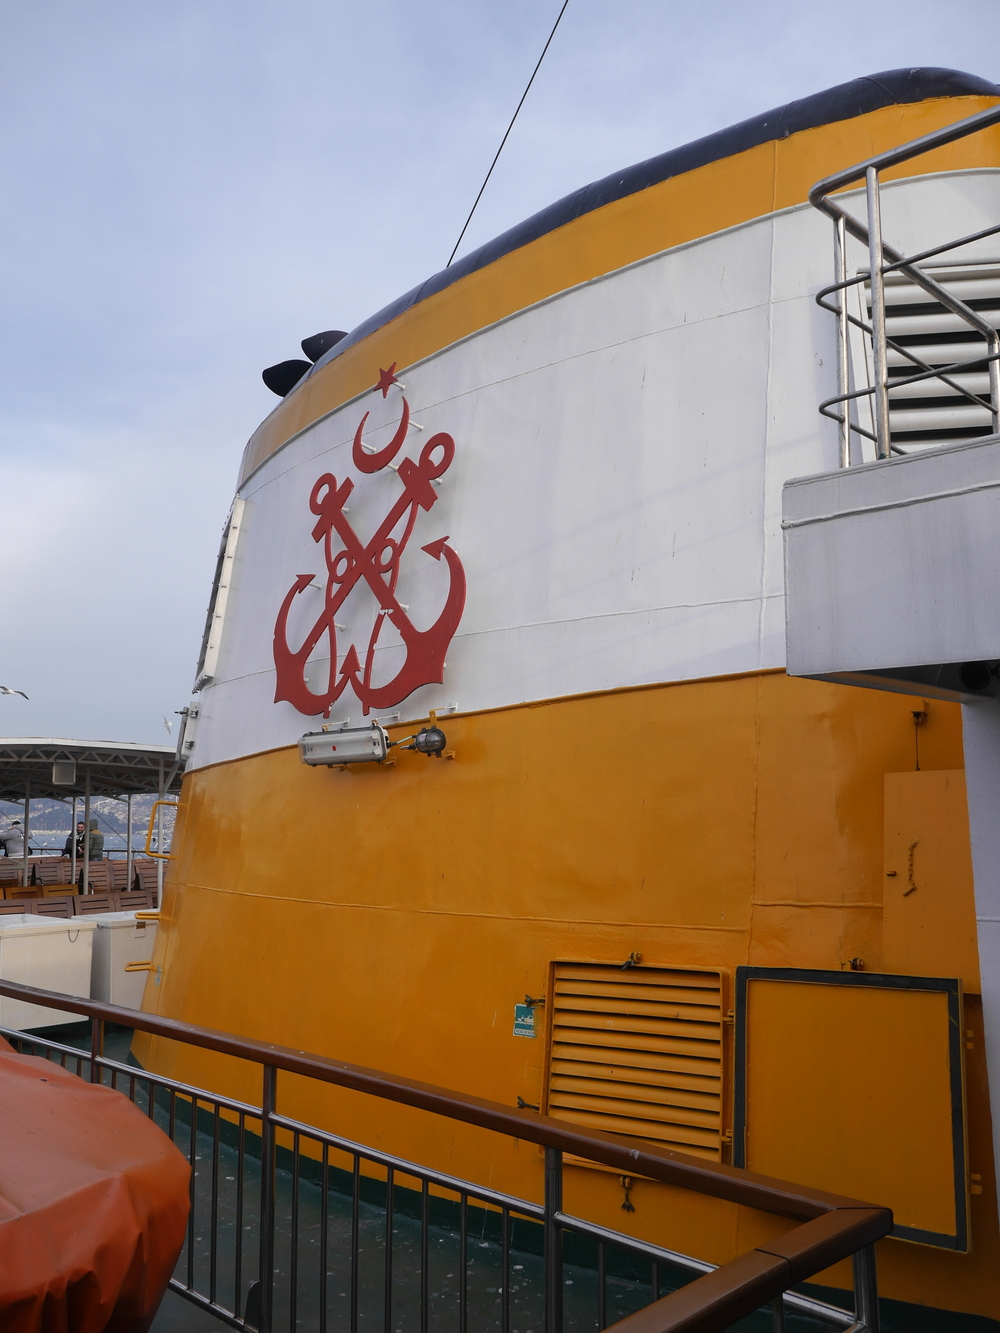 The  ferry company 's (rather handsome) insignia.